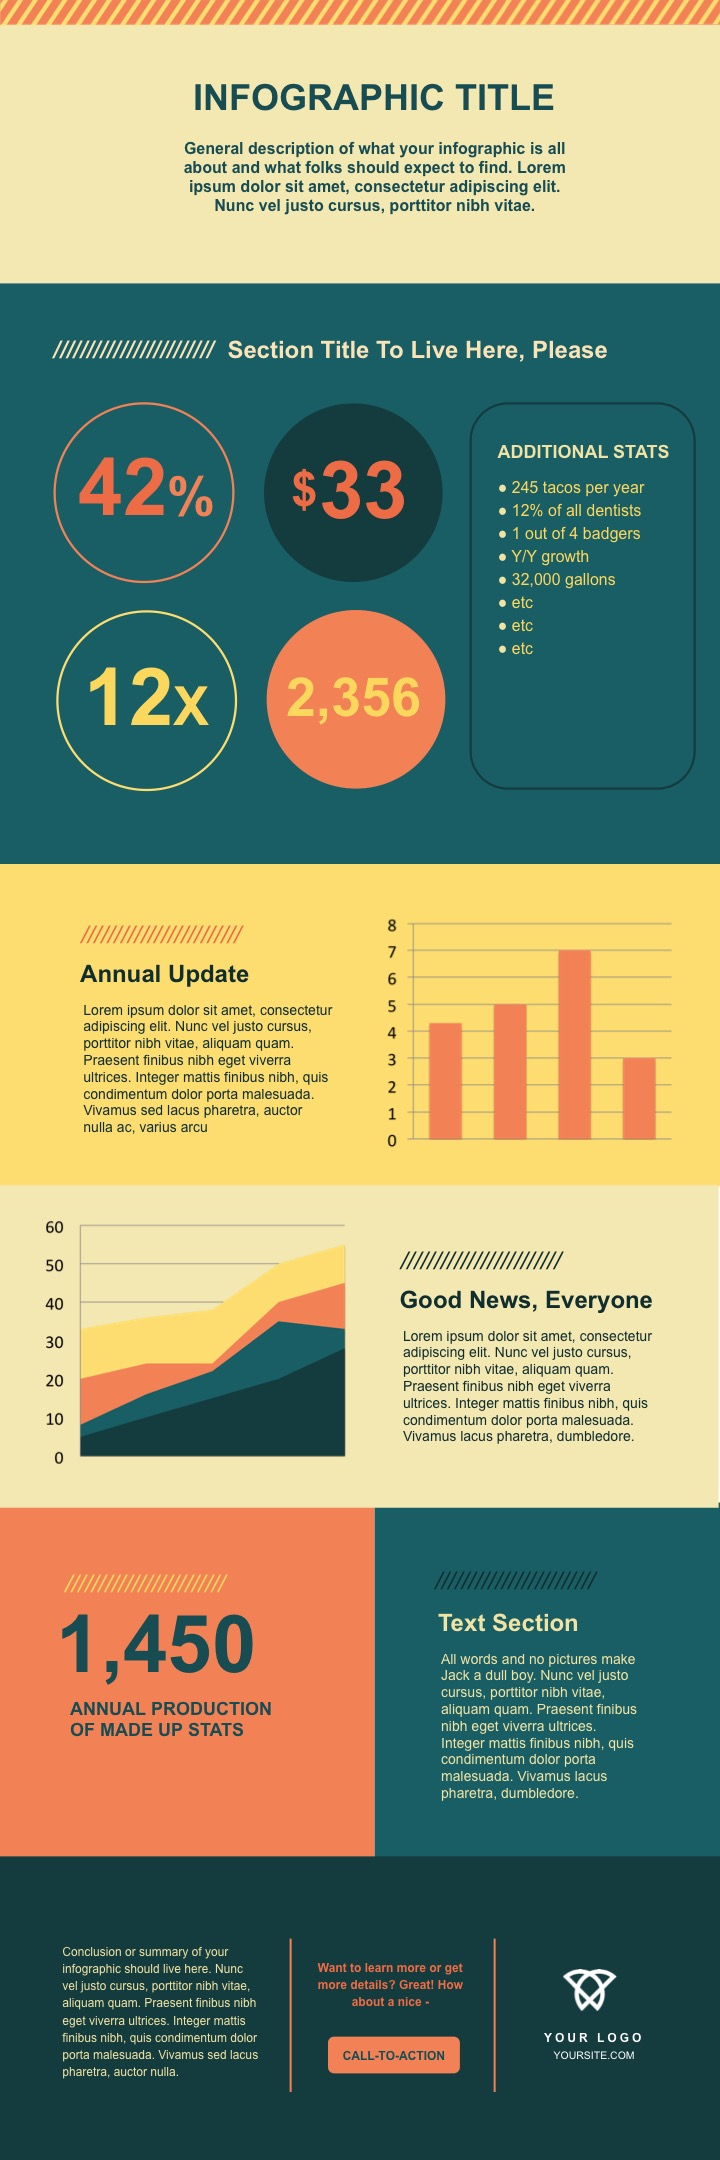 15 free infographic templates